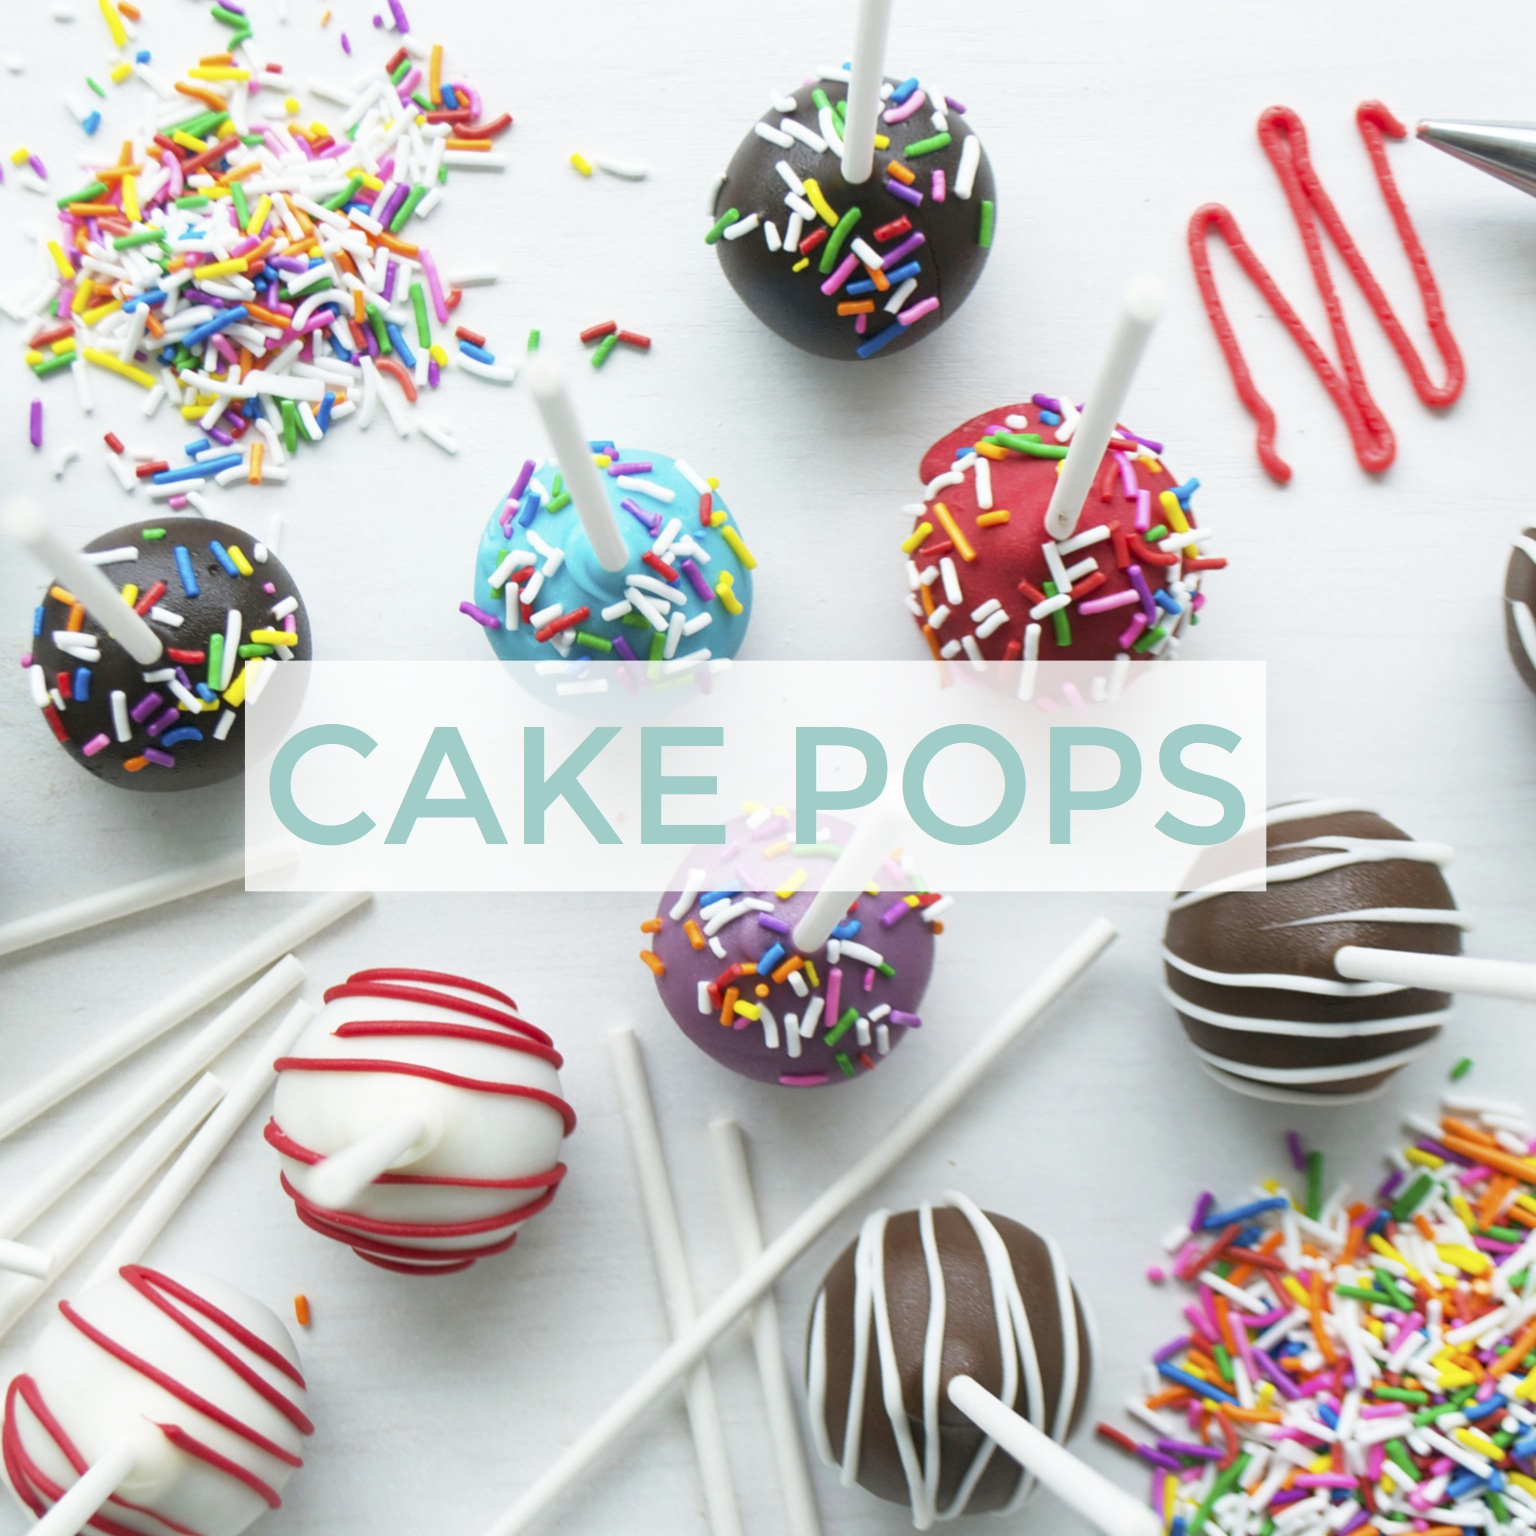 Bake Sale Toronto Cake Pops Best Ingredients .jpg copy.jpg